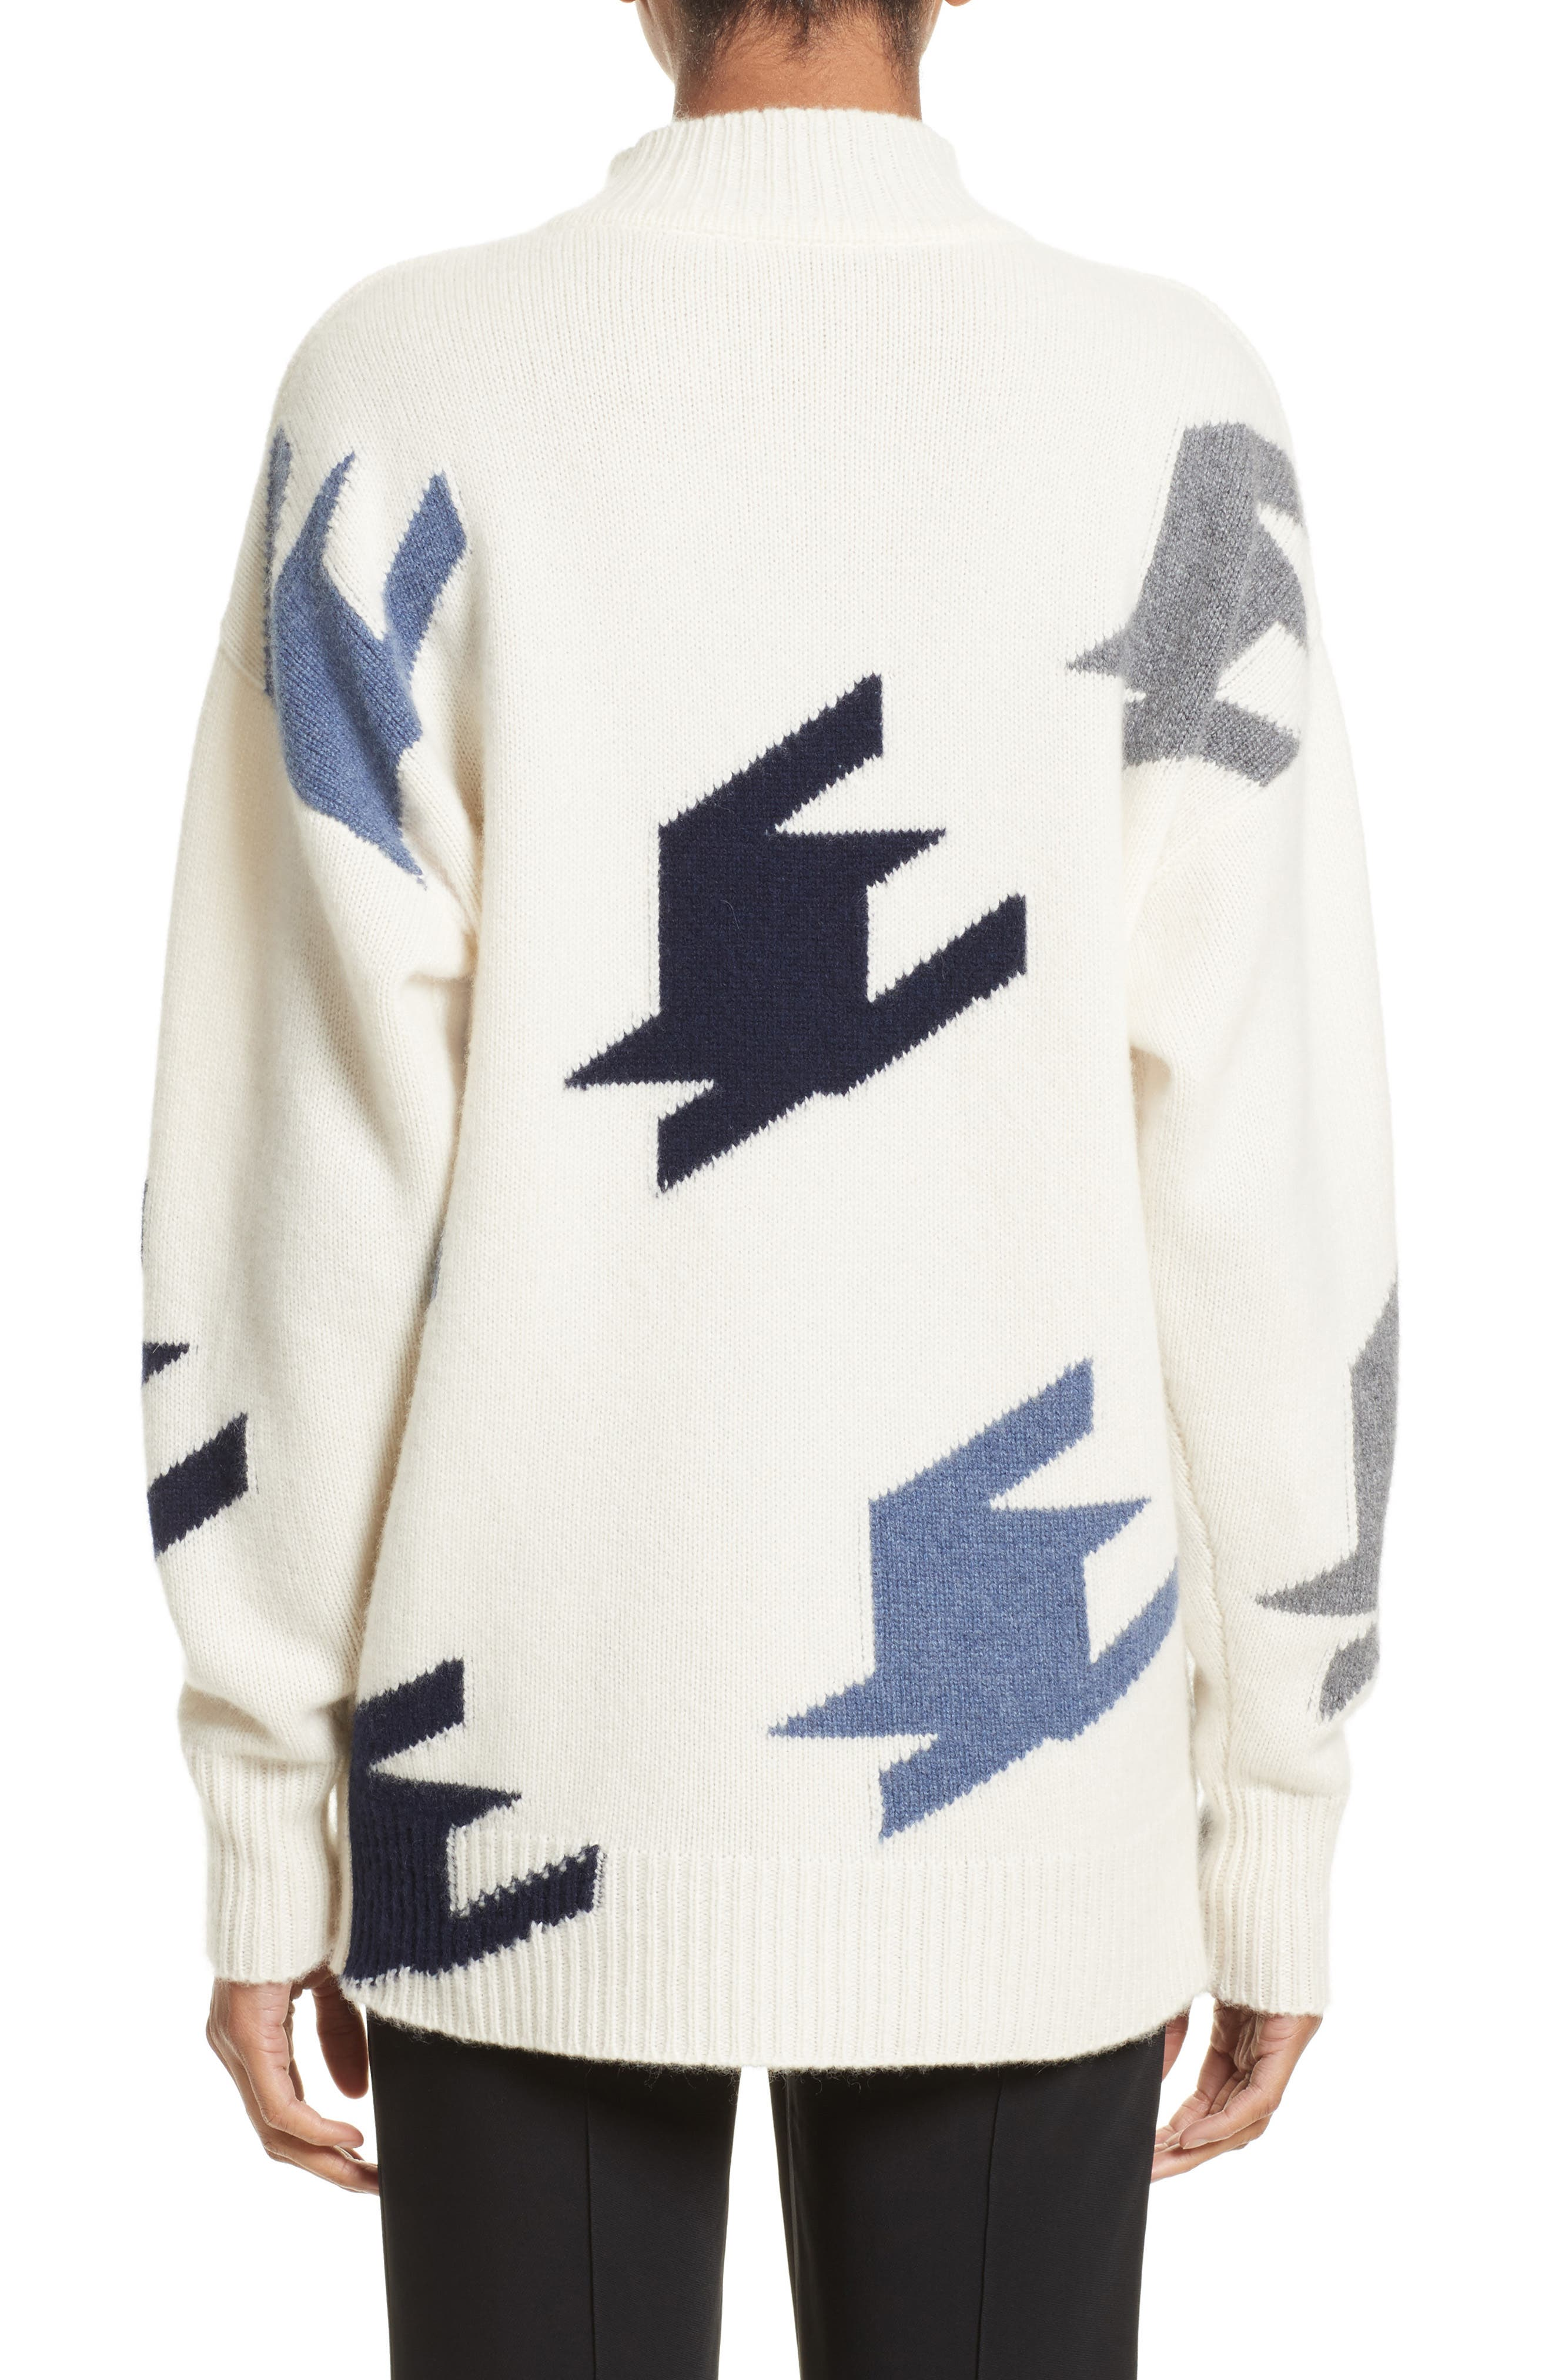 VICTORIA BECKHAM,                             Houndstooth Cashmere Sweater,                             Alternate thumbnail 2, color,                             905